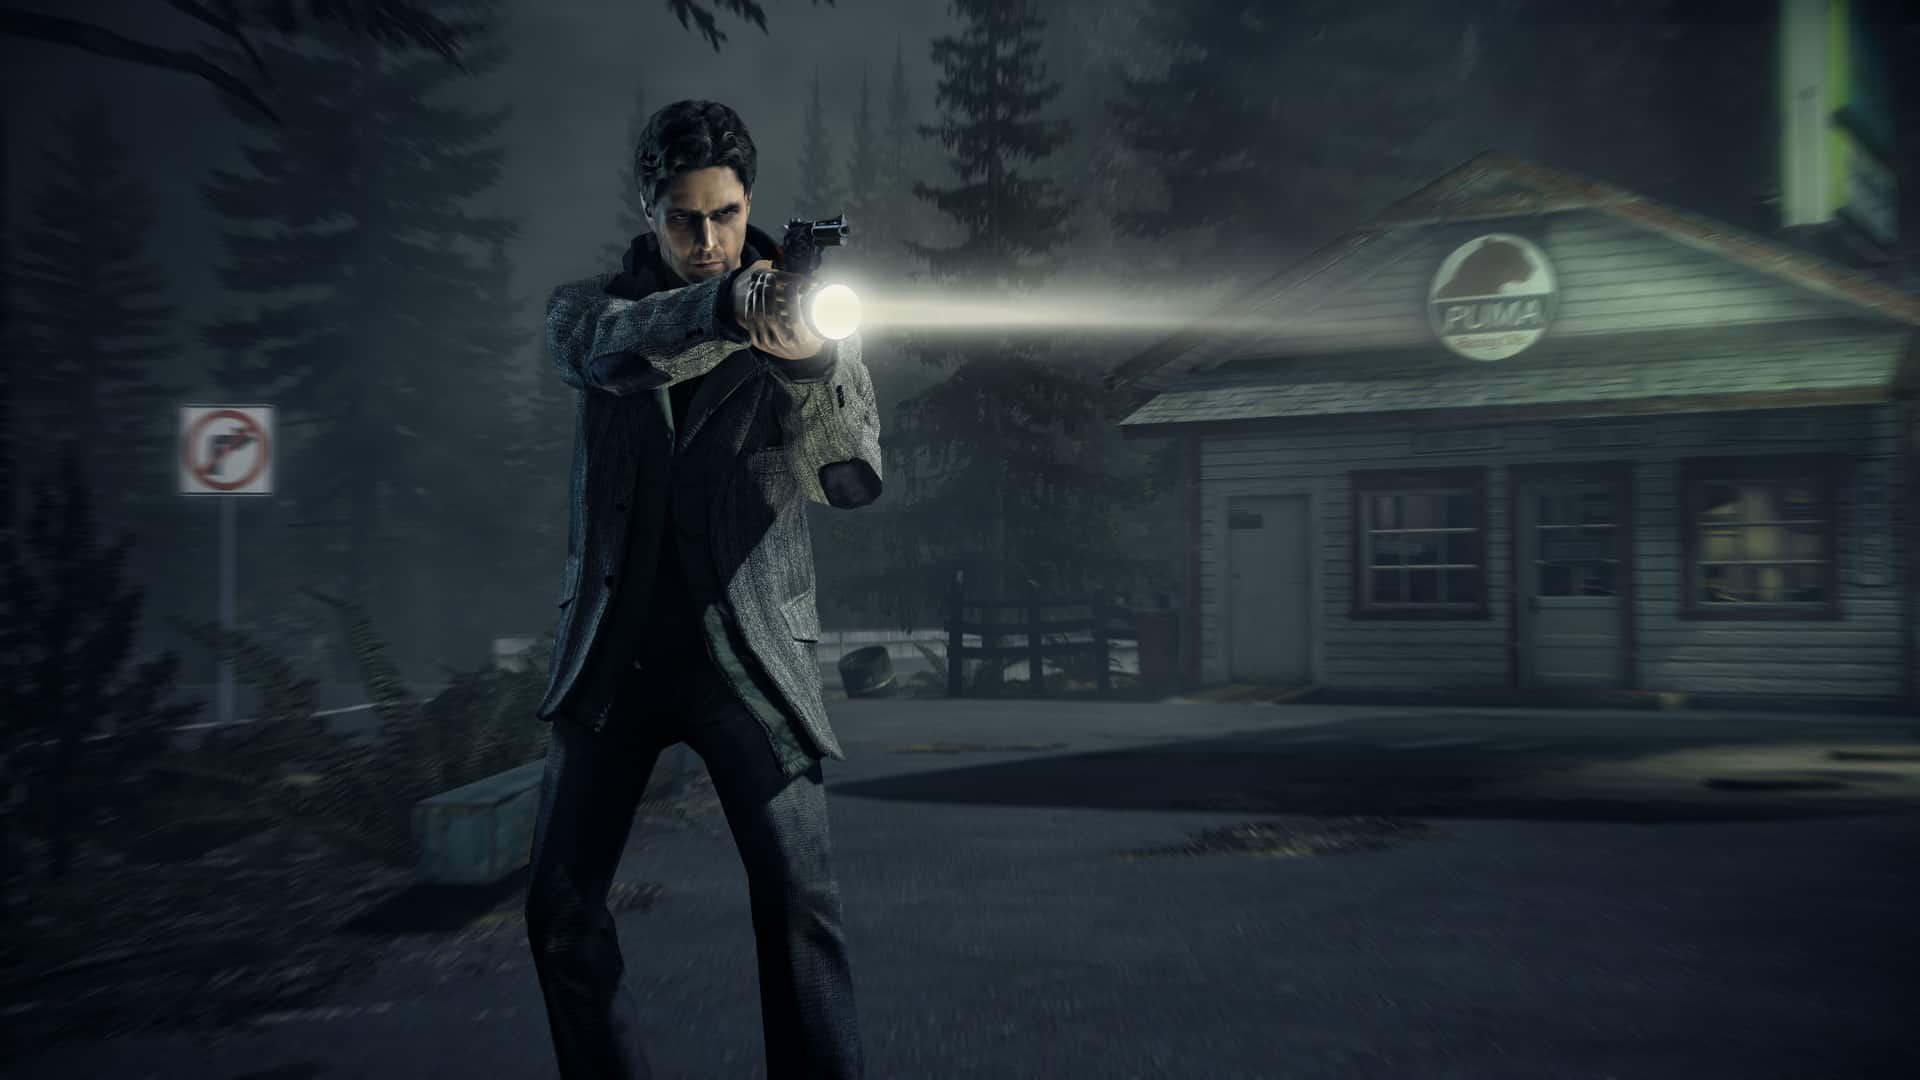 Alan Wake sarà disponibile su Steam con uno sconto del 90%